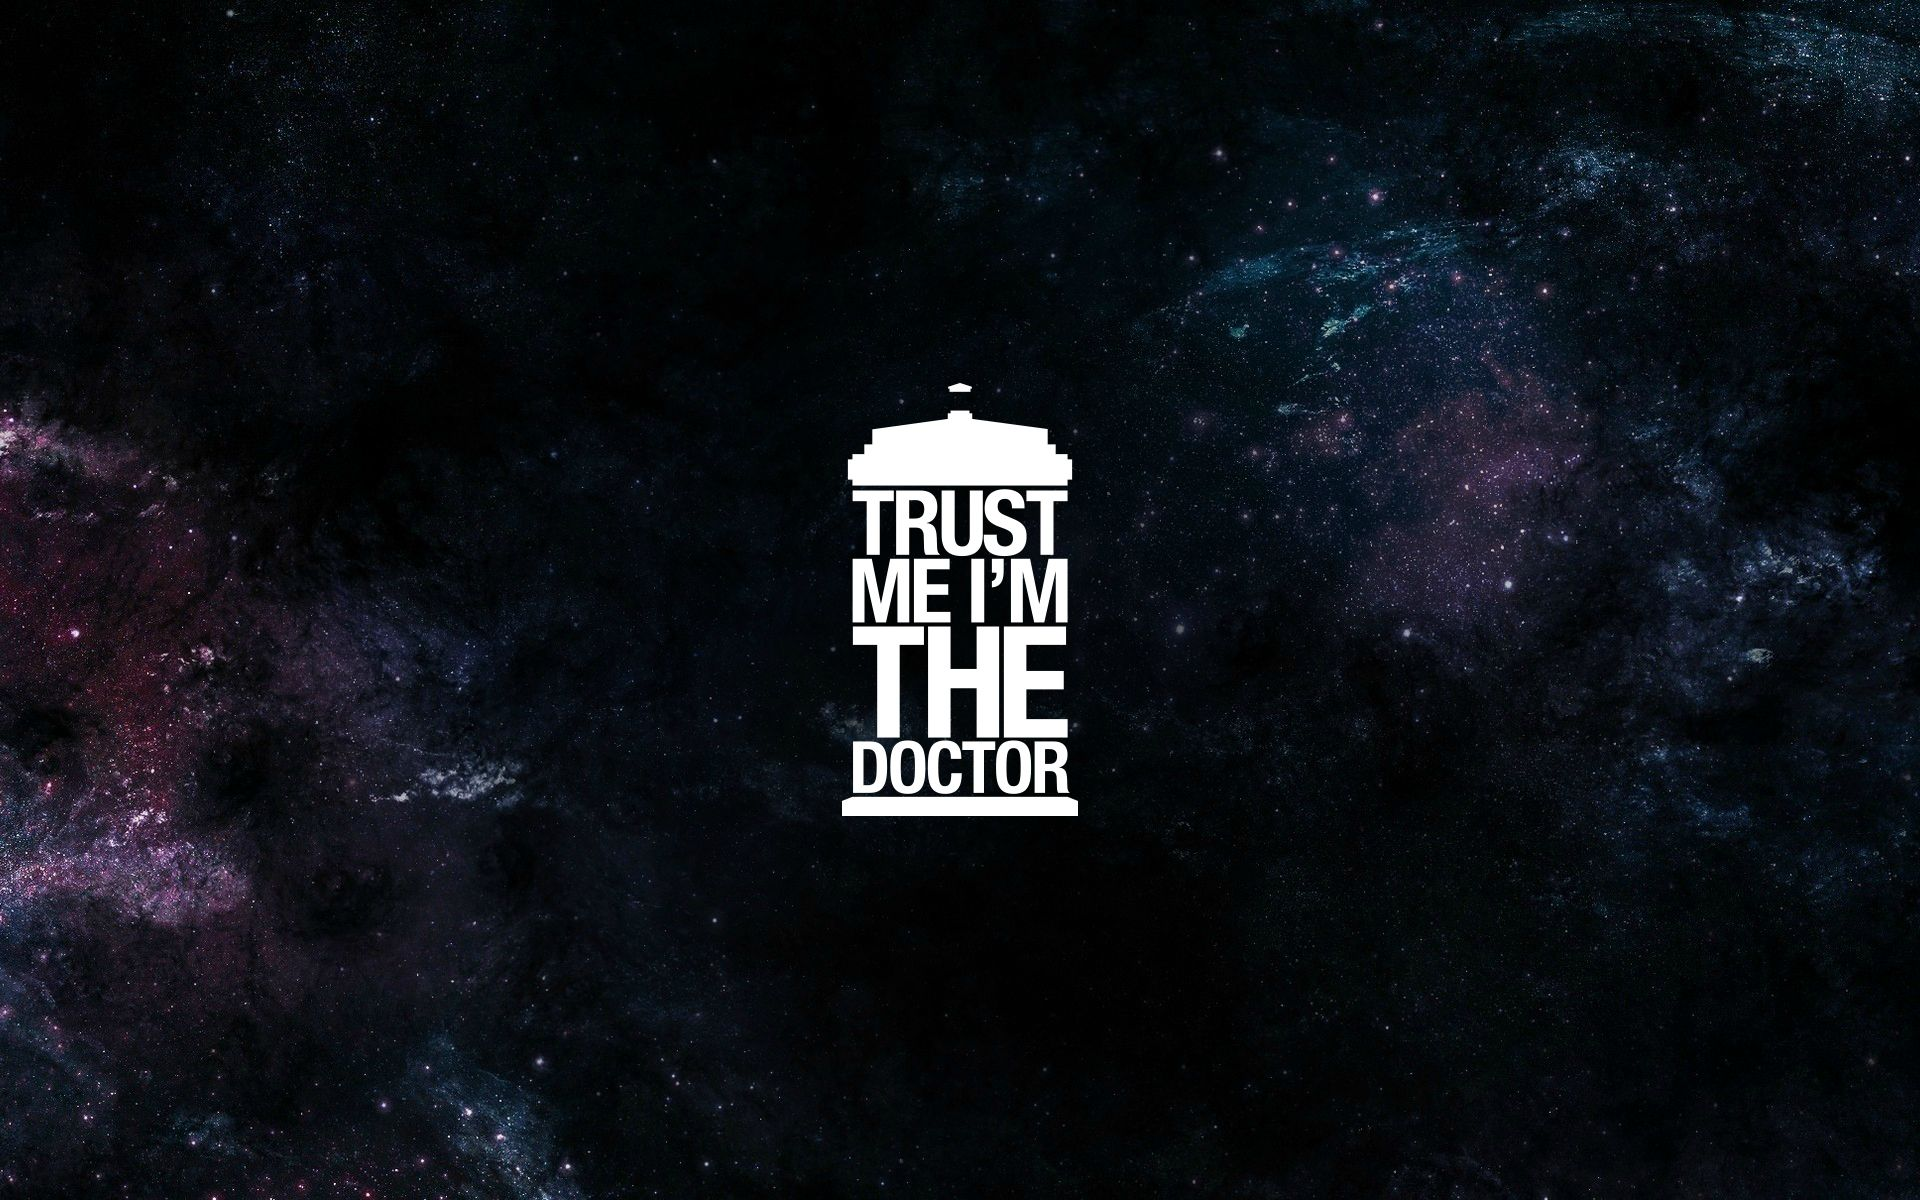 Collection of Dr Who Wallpapers For Desktop on HDWallpapers